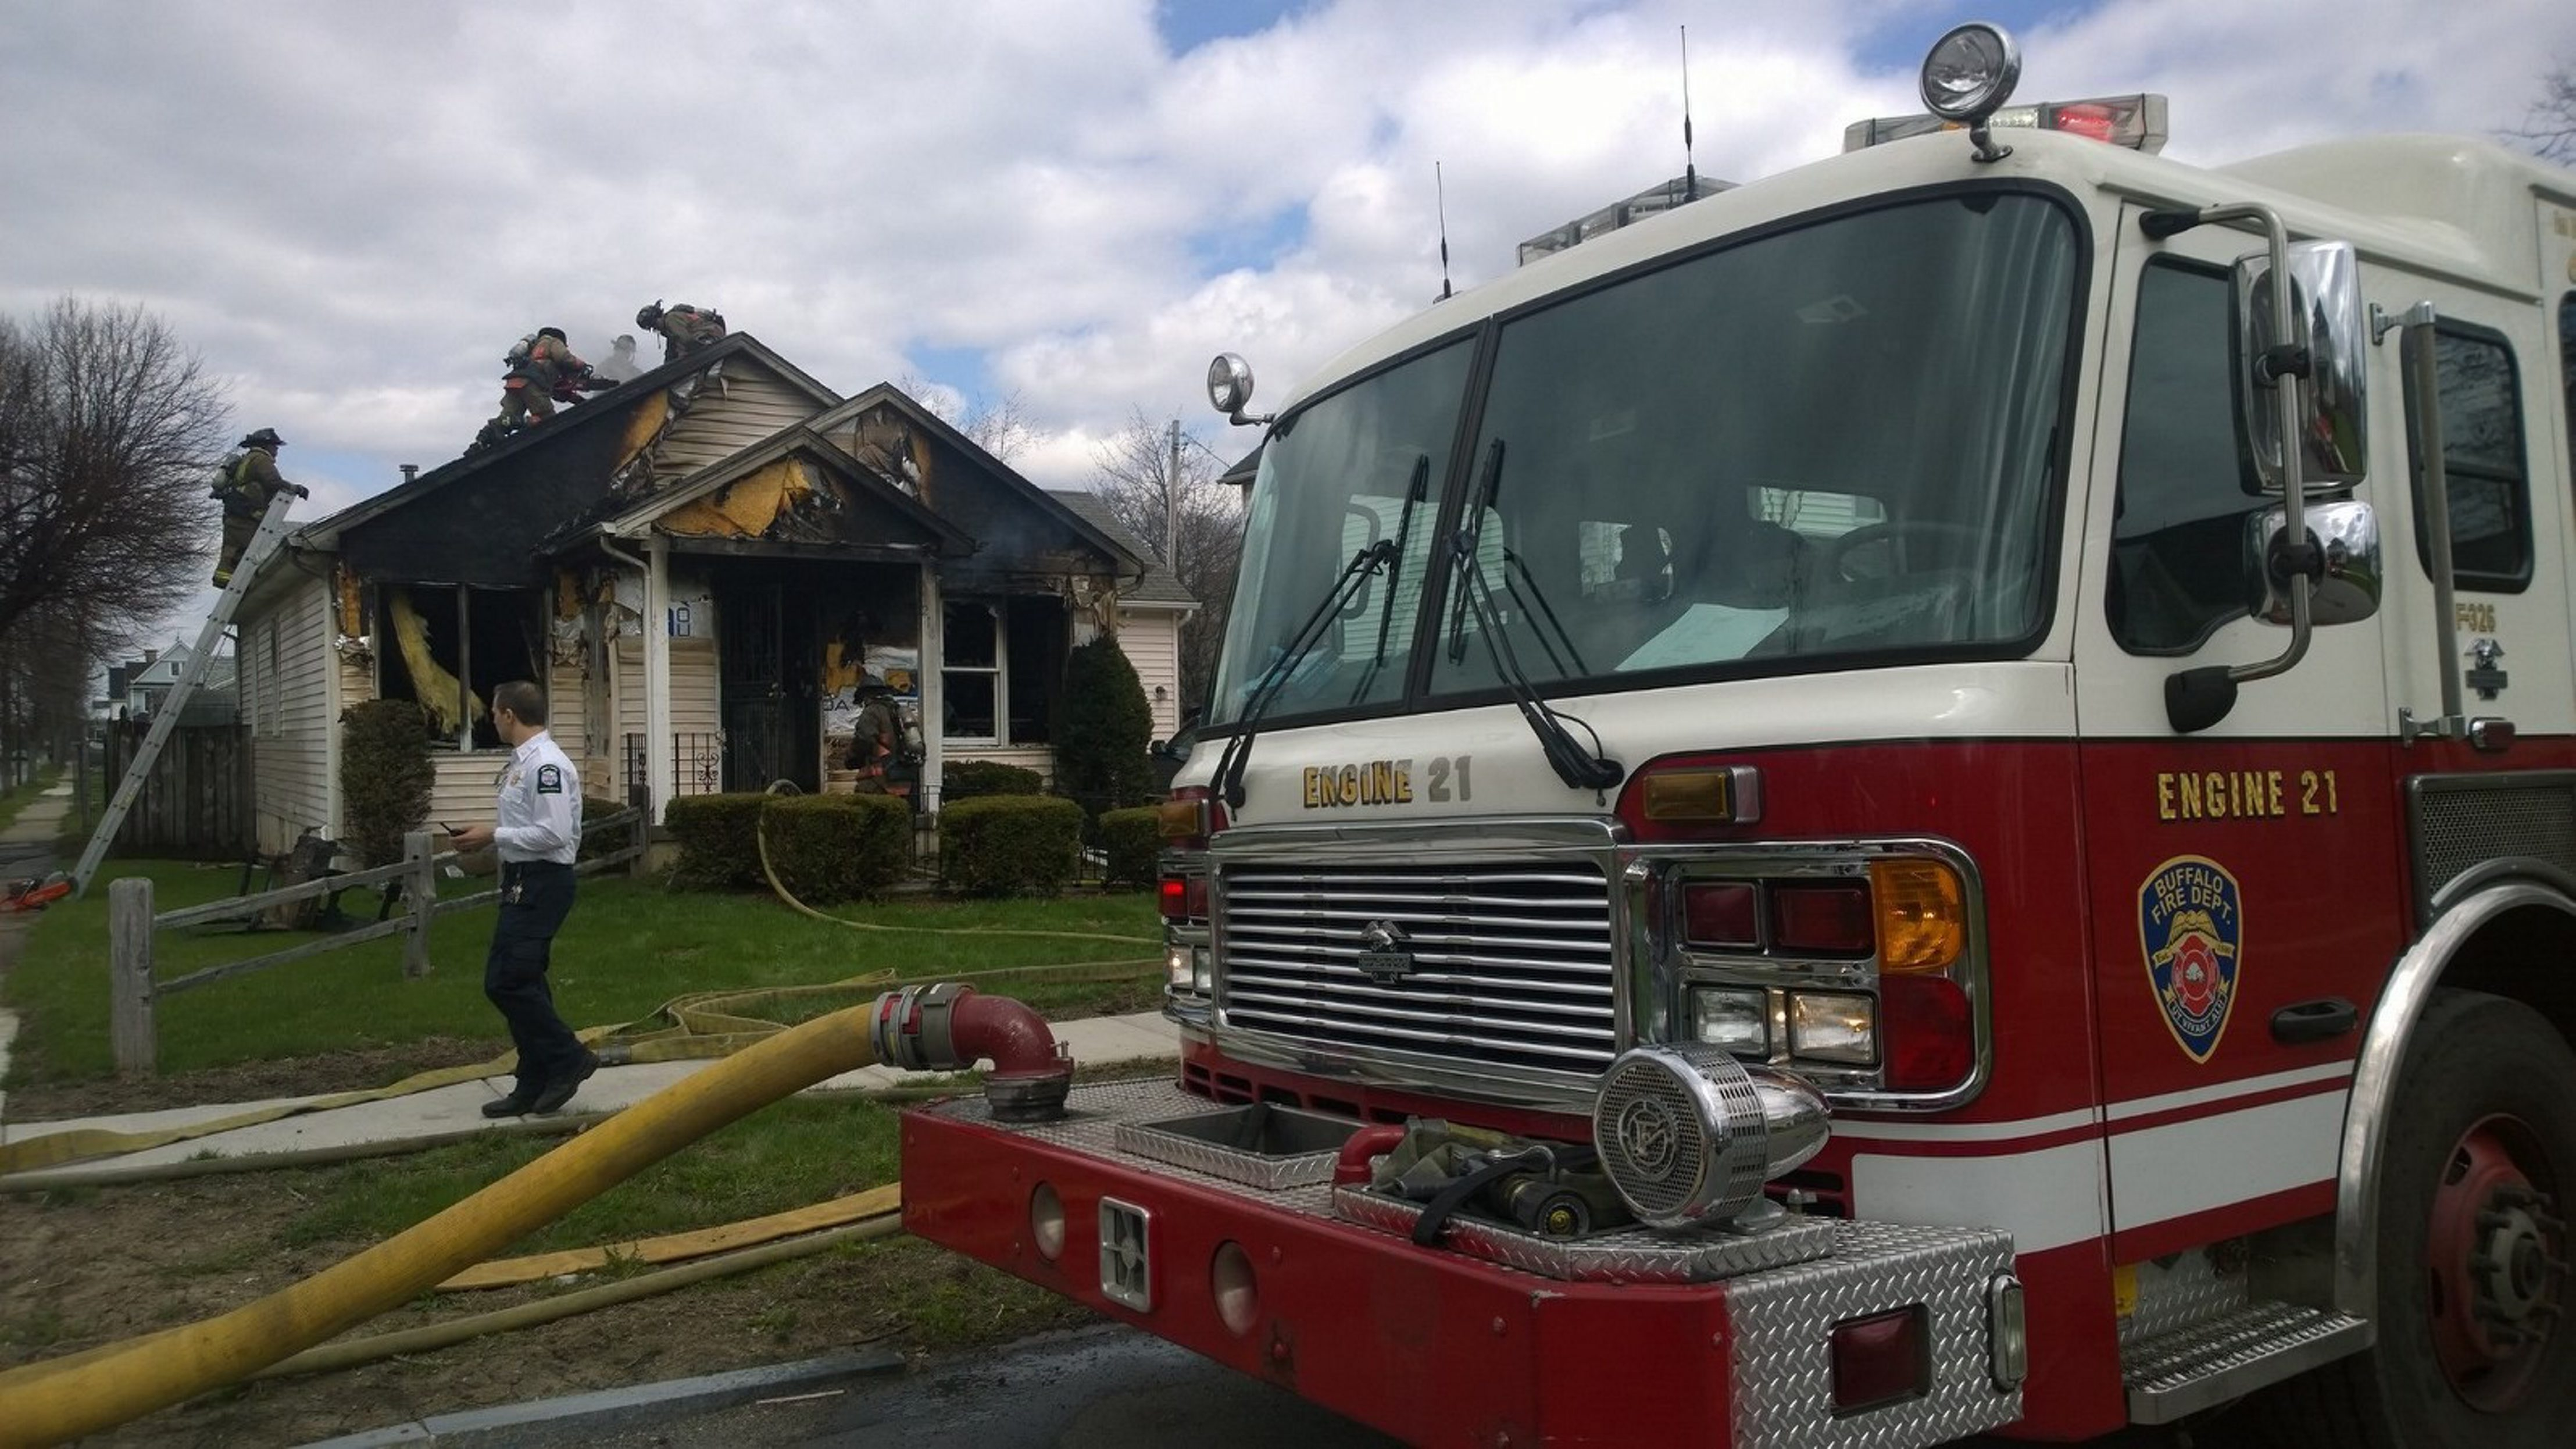 Buffalo firefighters battled fires in a house and garage on Glenwood Avenue Friday afternoon. The blaze left the front of the one-story house severely charred and the inside appeared to be heavily damaged. Firefighters remained at the scene for hours examining debris.